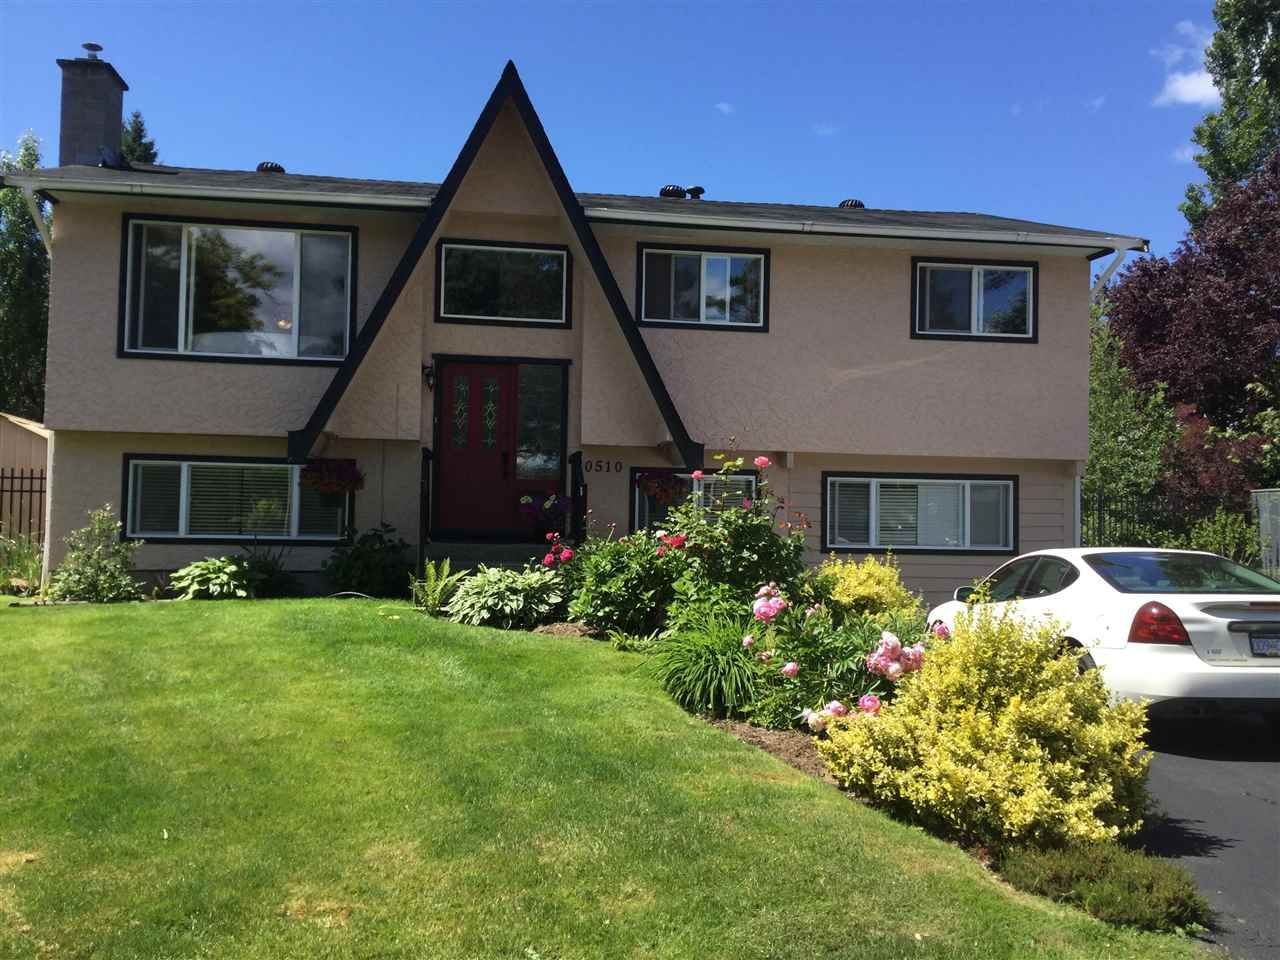 Main Photo: 20510 48A Avenue in Langley: Langley City House for sale : MLS®# R2541259